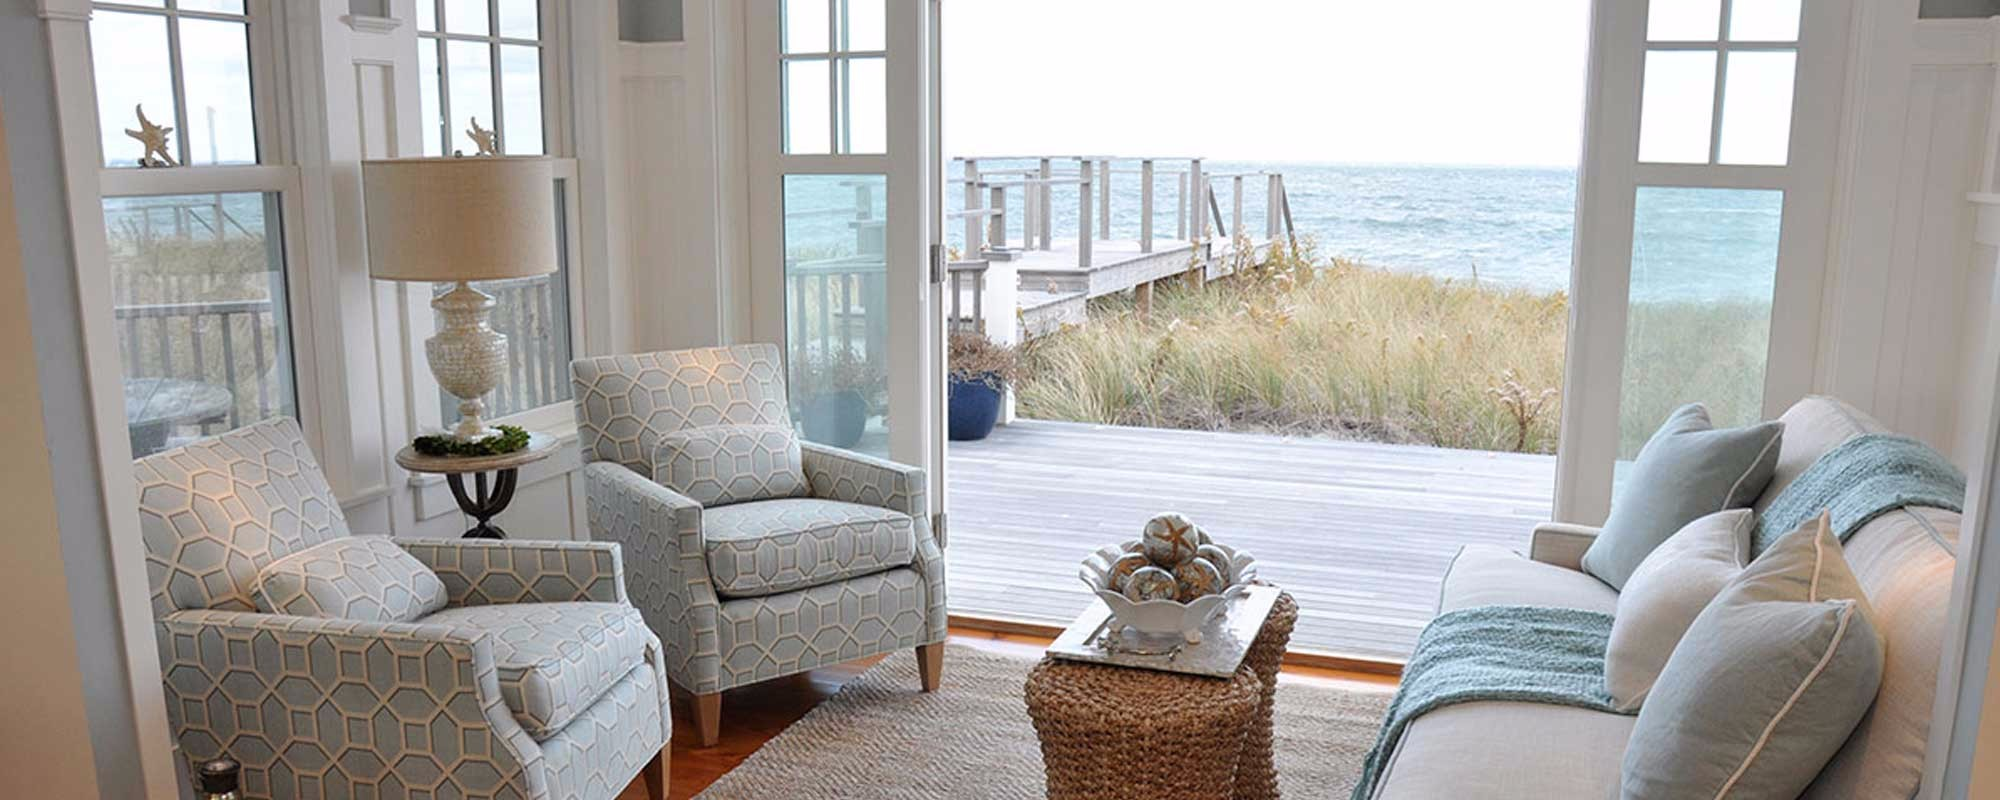 Interior design cape cod ma casabella interiors for Designa interiors